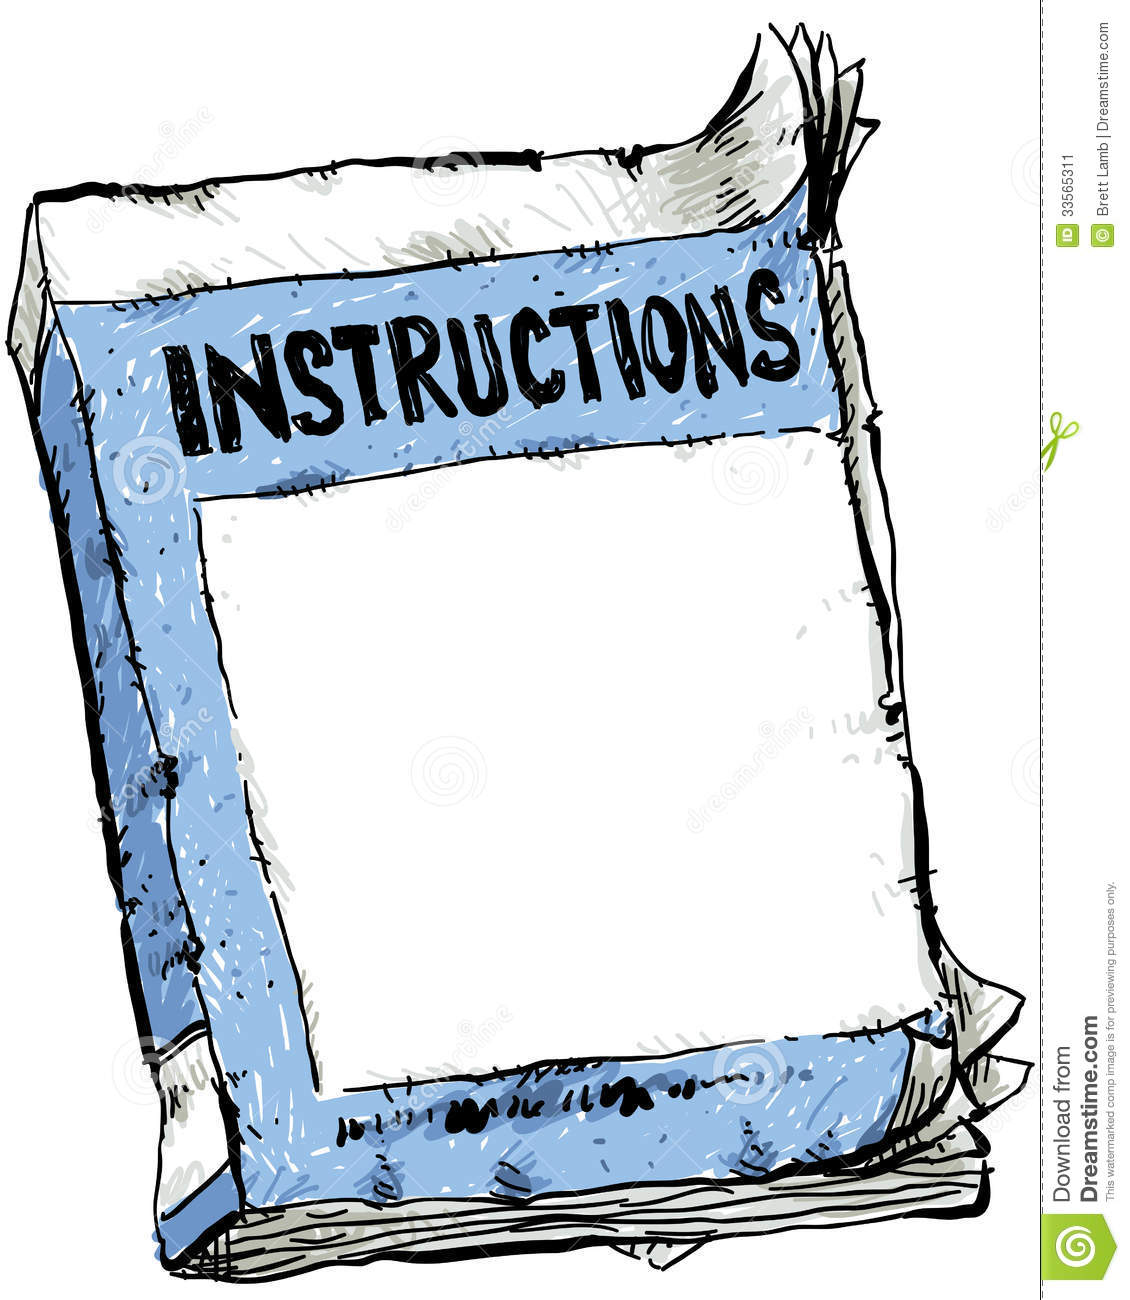 Worn Instruction Booklet Stock Image - Image: 33565311